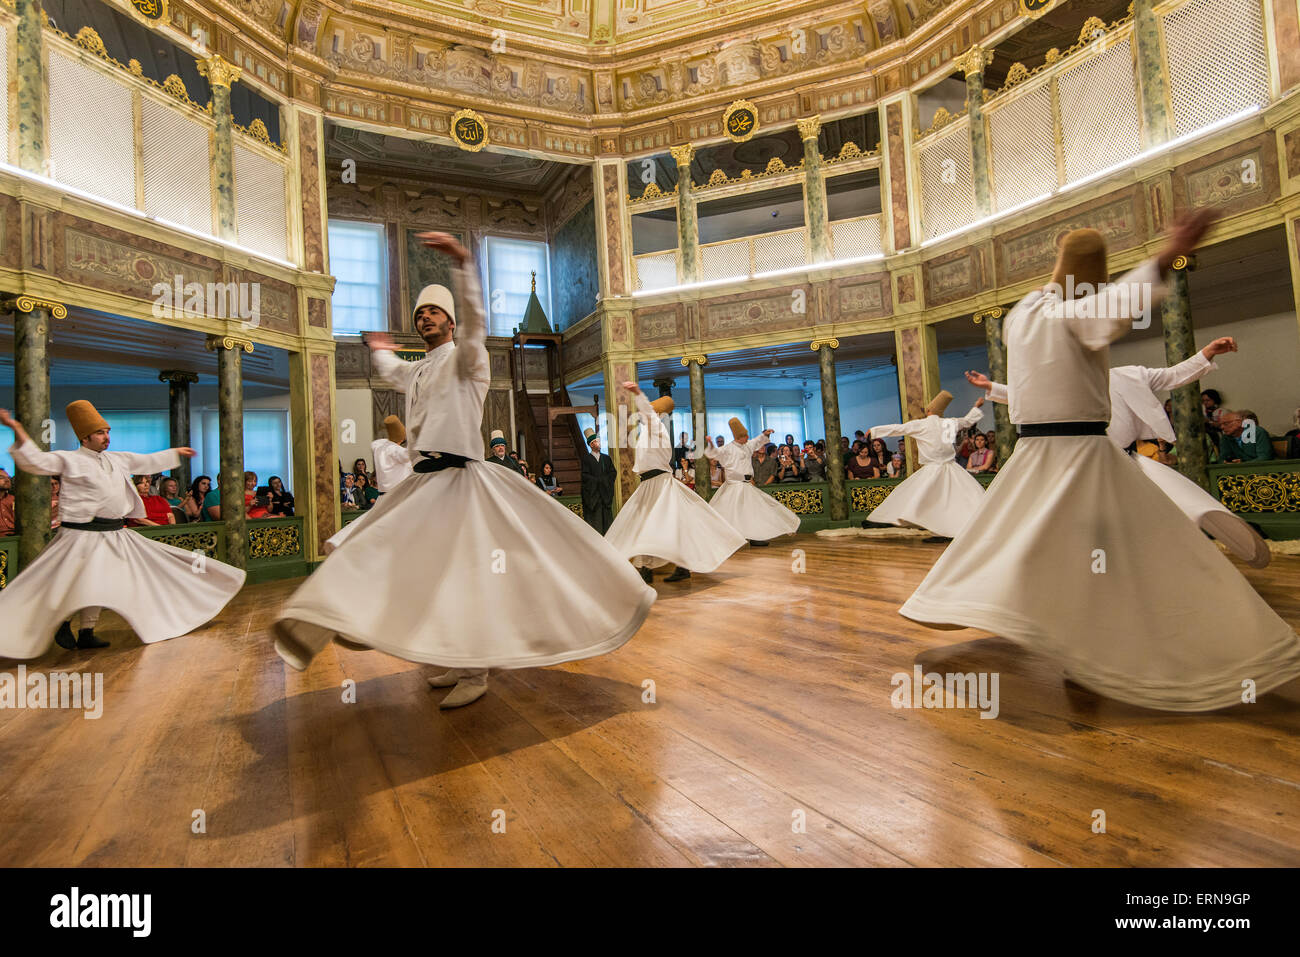 Whirling dervishes performing at Galata Mevlevi Museum, Istanbul, Turkey - Stock Image